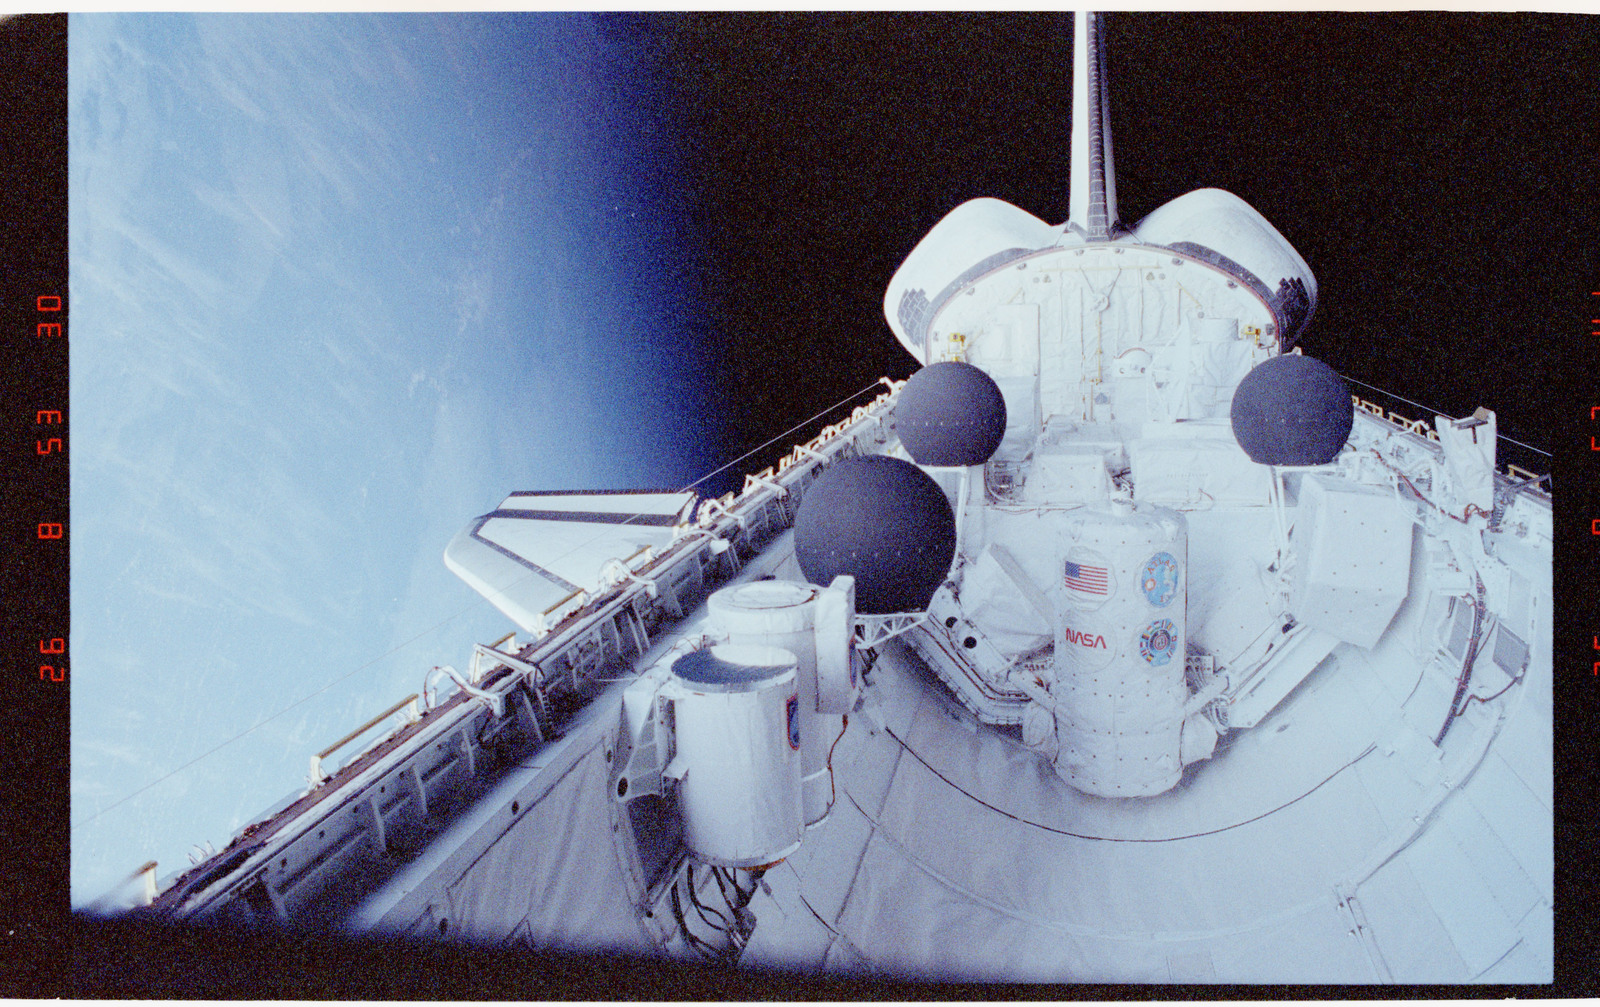 S45-35-001 - STS-045 - Payload bay